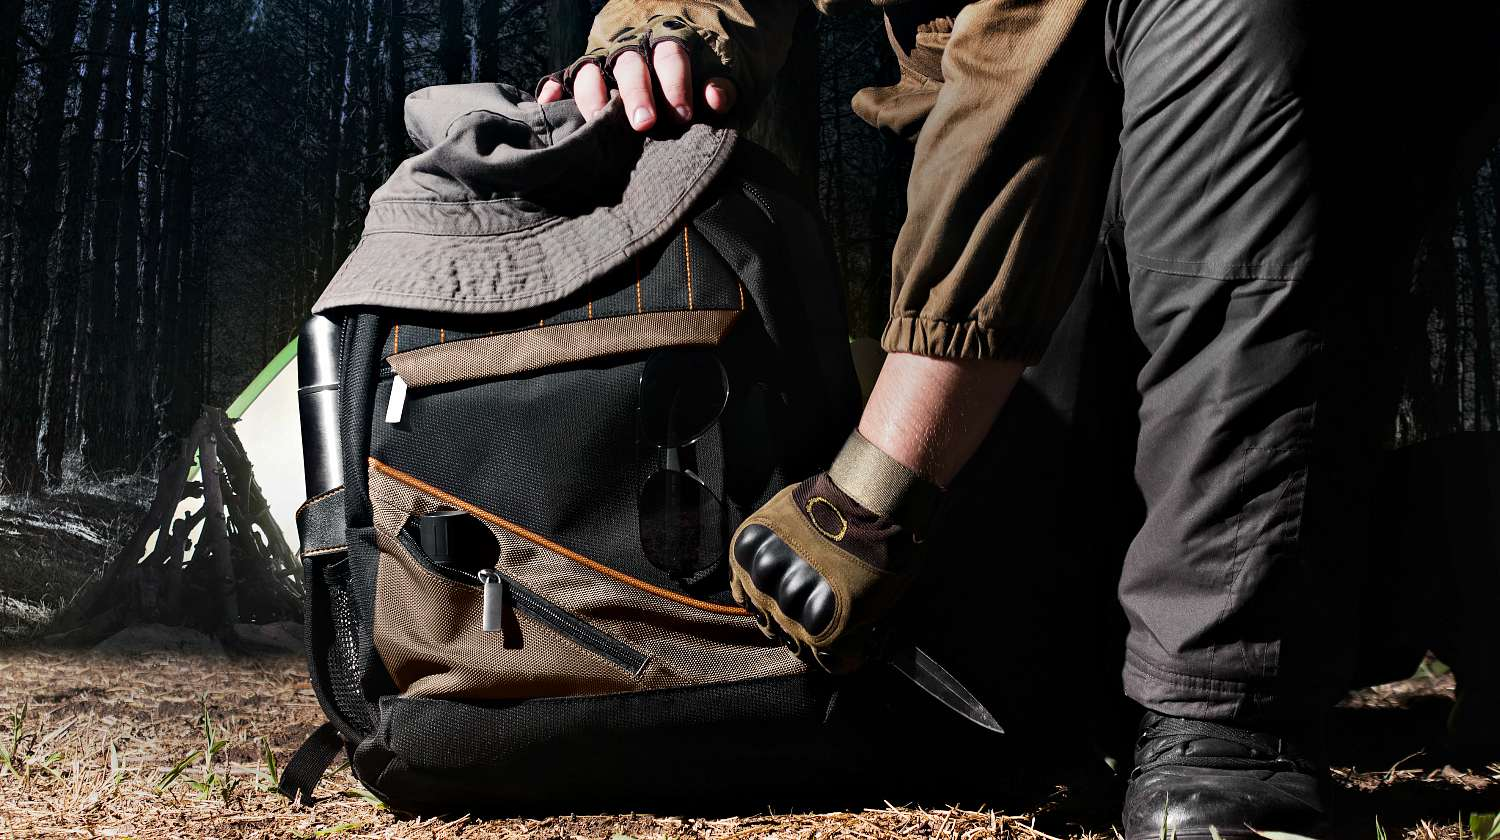 Featured   Man in tactical outfit holding a knife and kneeling for backpack with camping and tactical gear on night forest background   How To Fix Backpack Straps And Zippers Outdoors